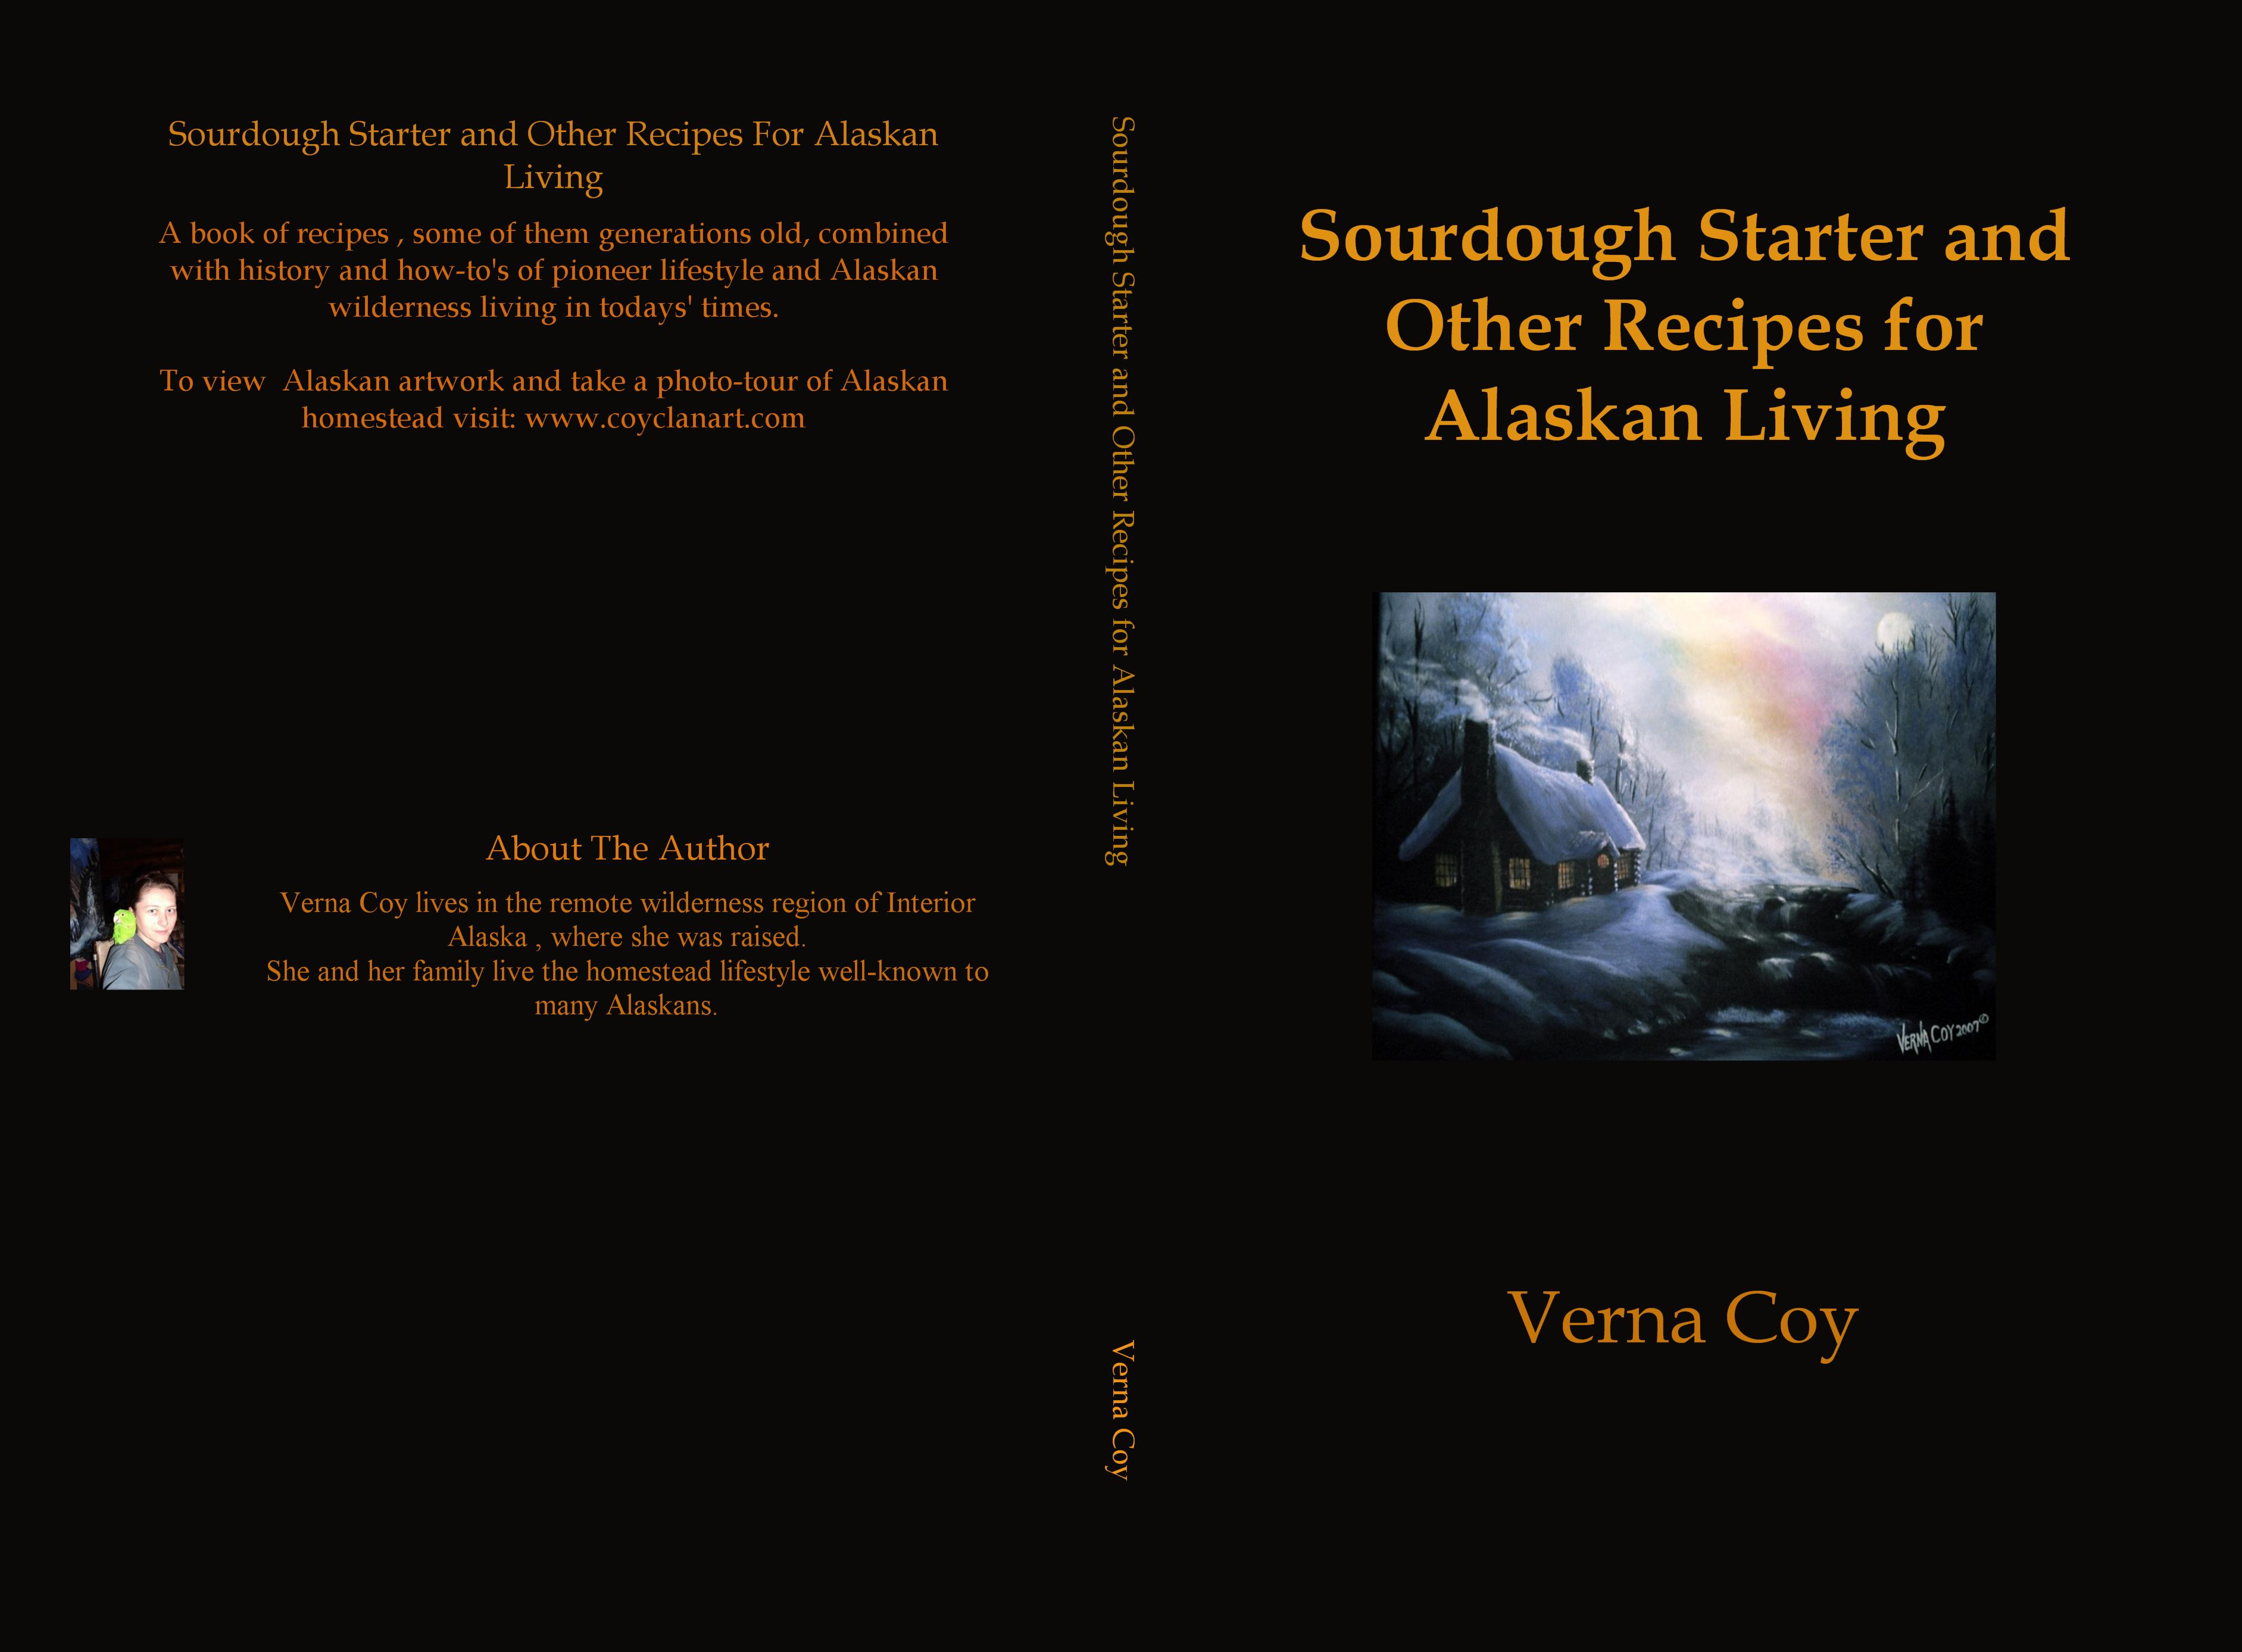 Sourdough Starter and Other Recipes for Alaskan Living cover image